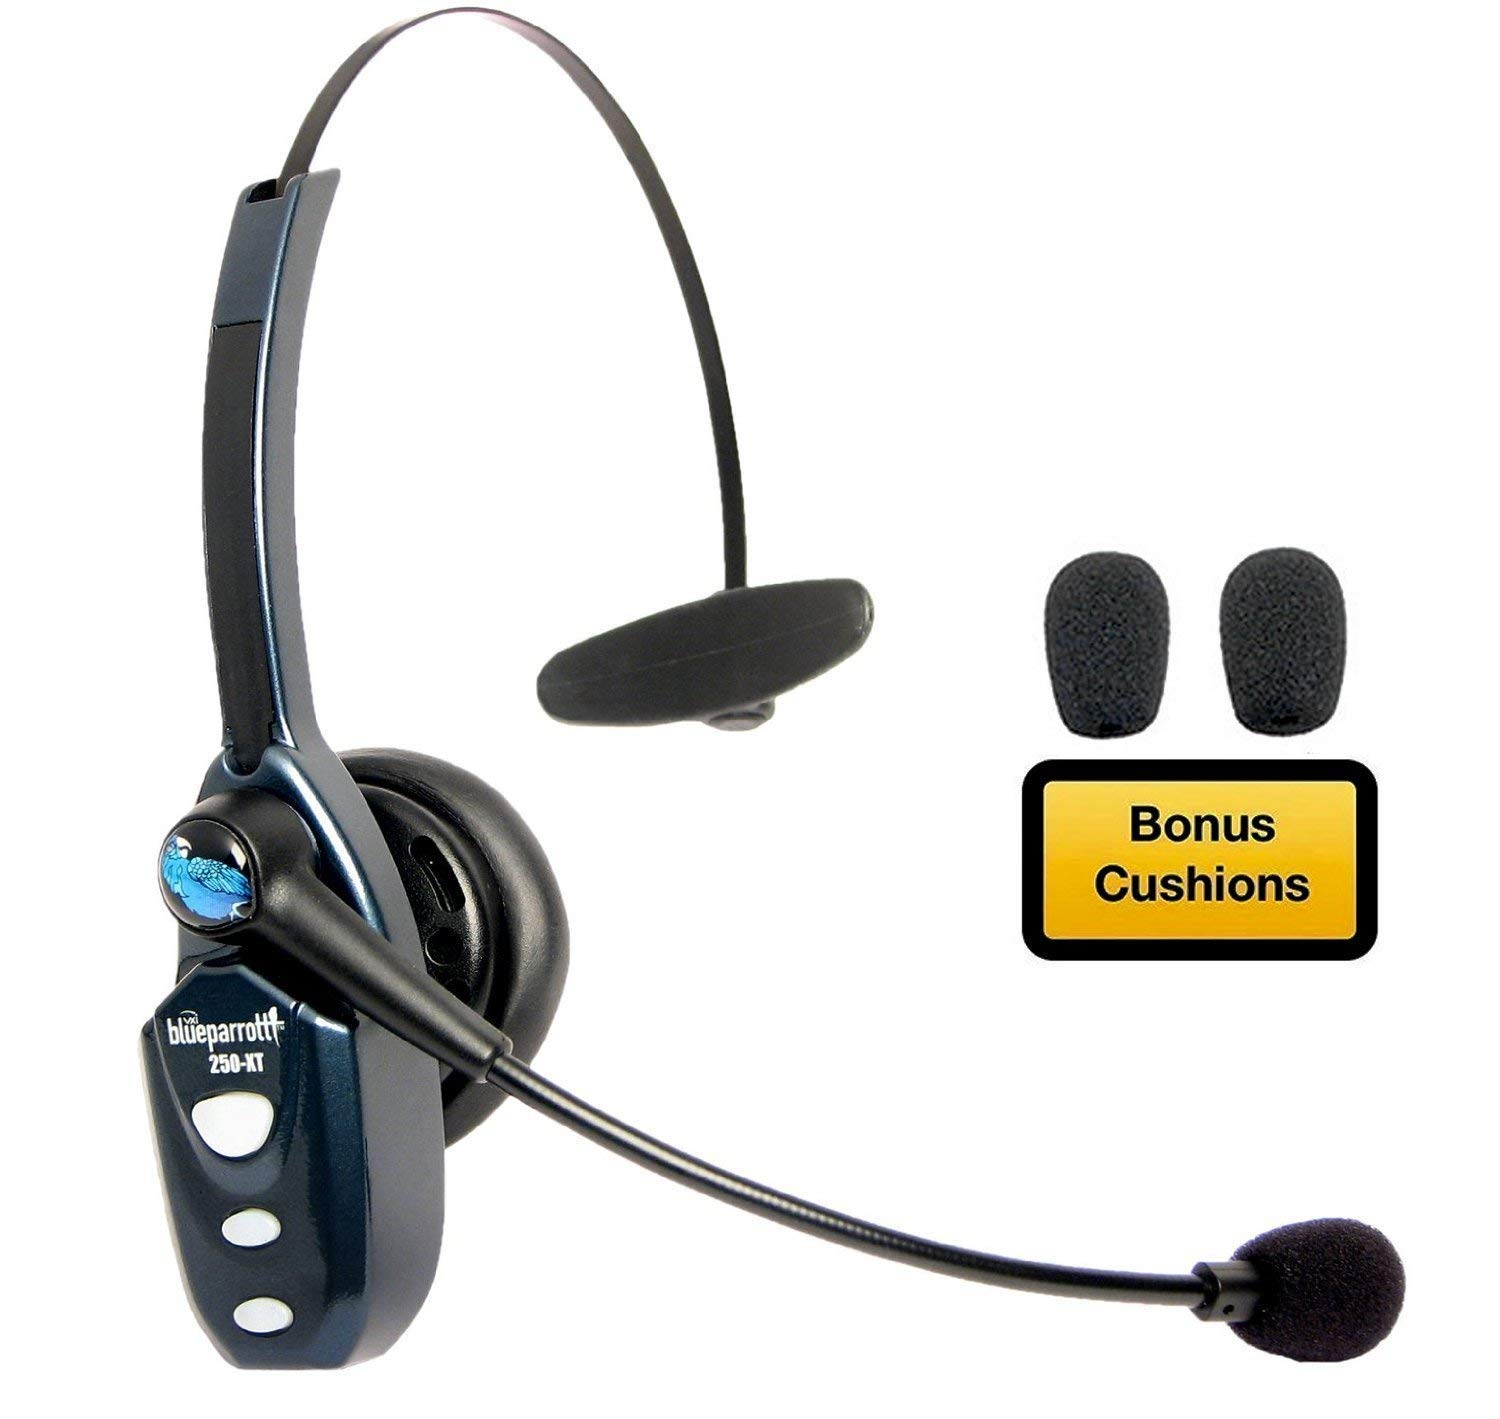 BlueParrott B250-XT Bluetooth Headset 204123 Bundle - Includes B250-XT Trucker Bluetooth Headset w/ Bonus Mic Foam Cushions | Auriculares Bluetooth Inalambricos de Blue Parrot by Global Teck Worldwide